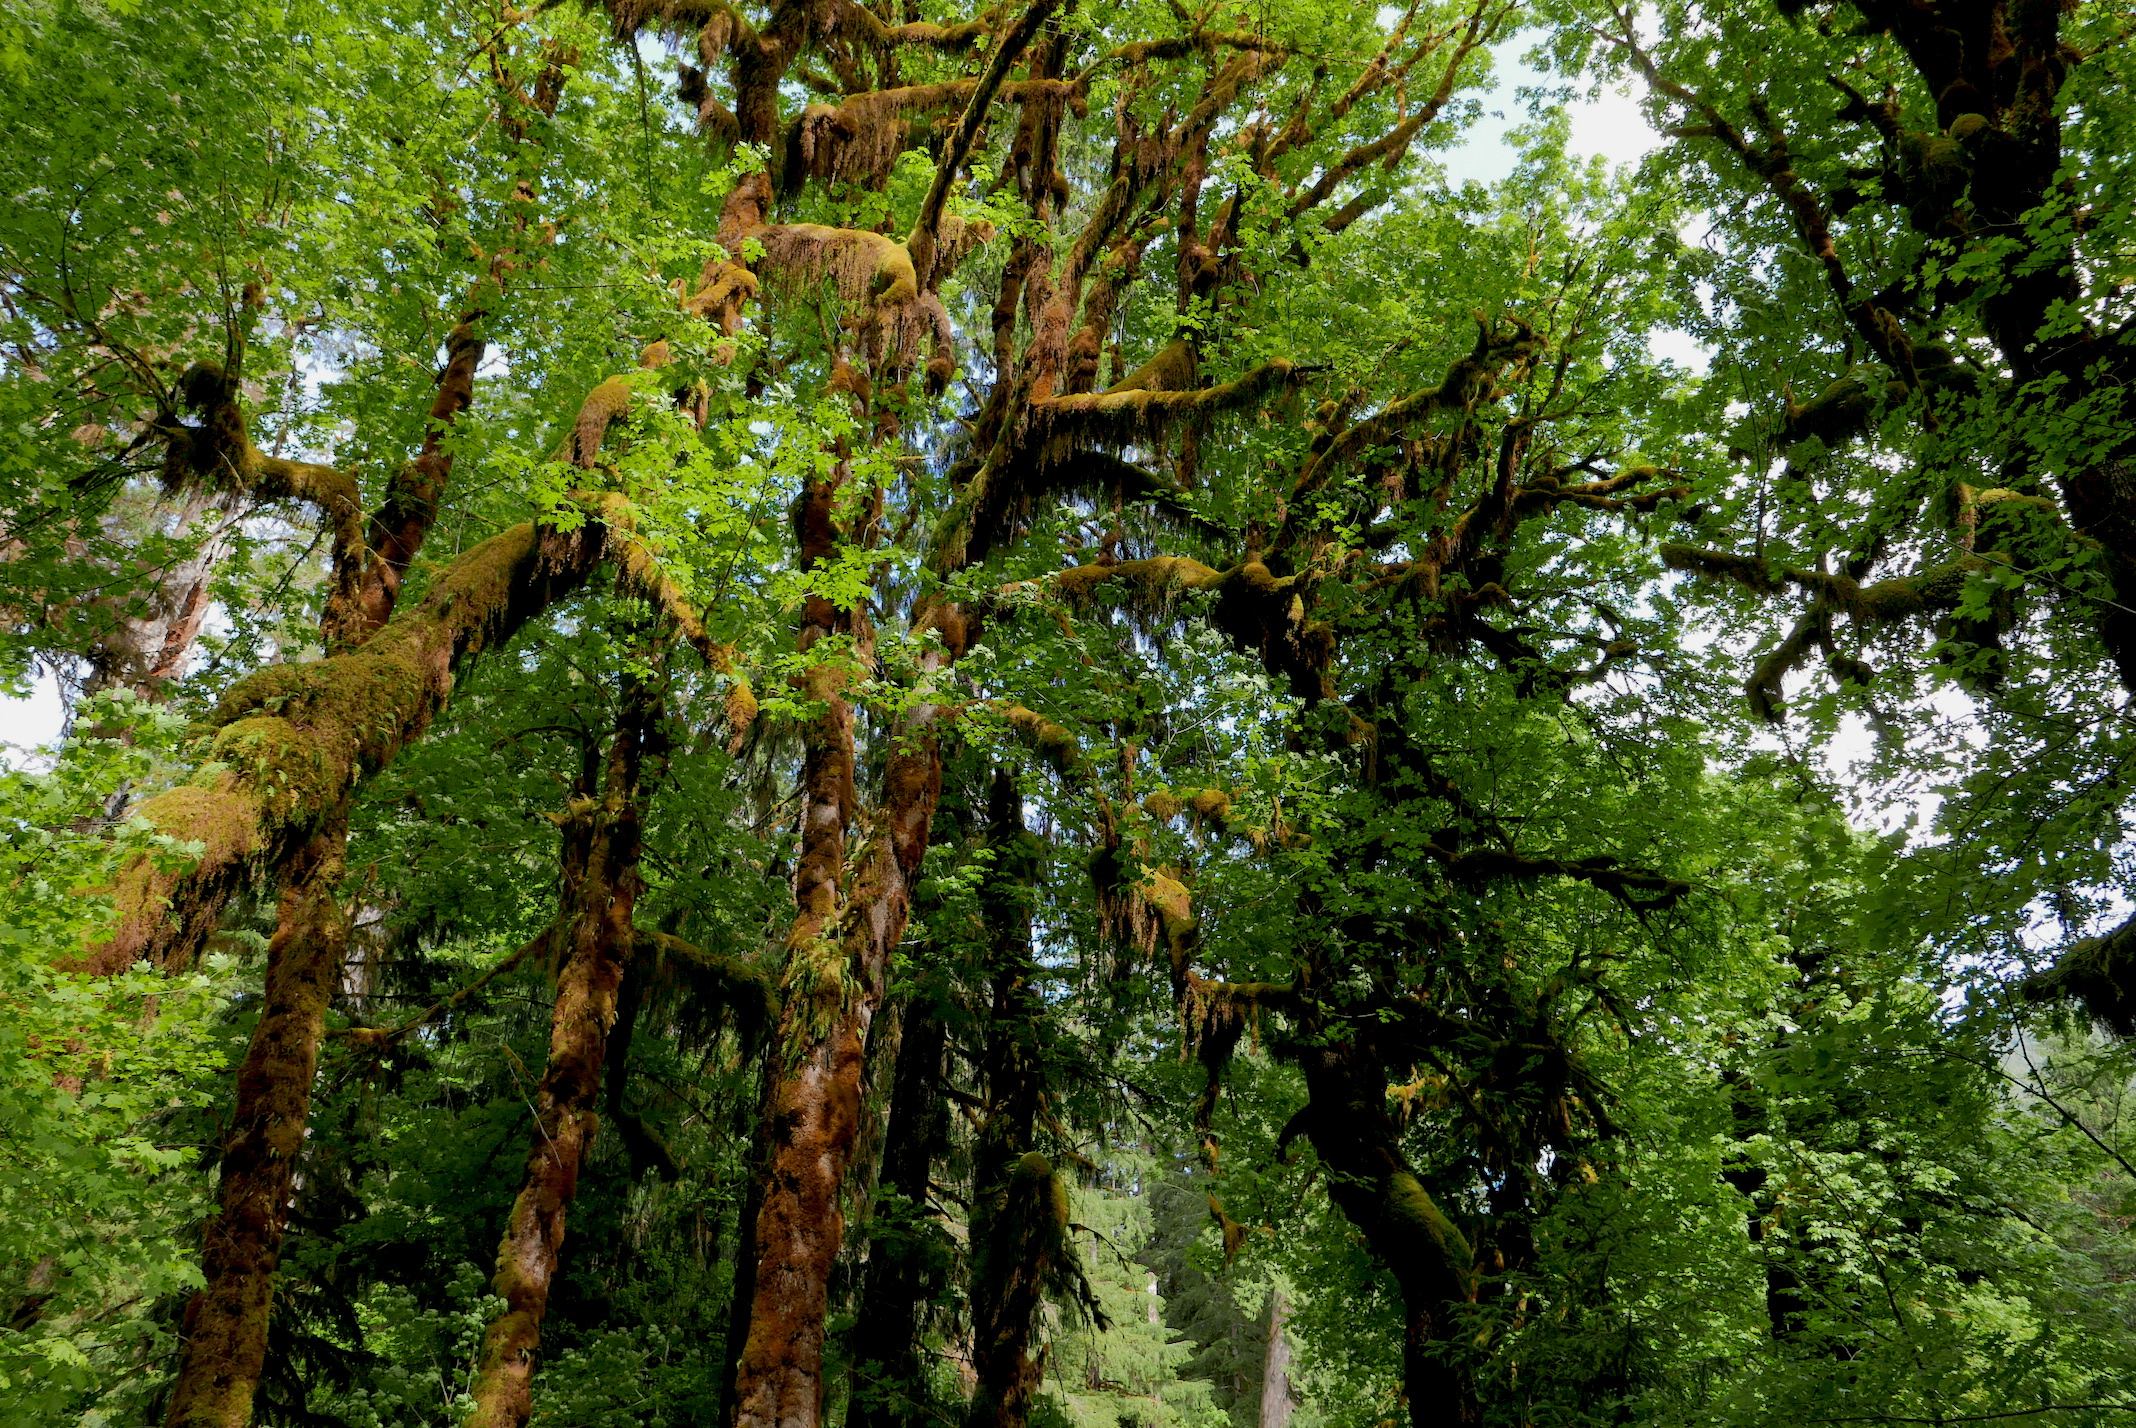 moss draped ancient maples characterize the canopy along the Hoh River